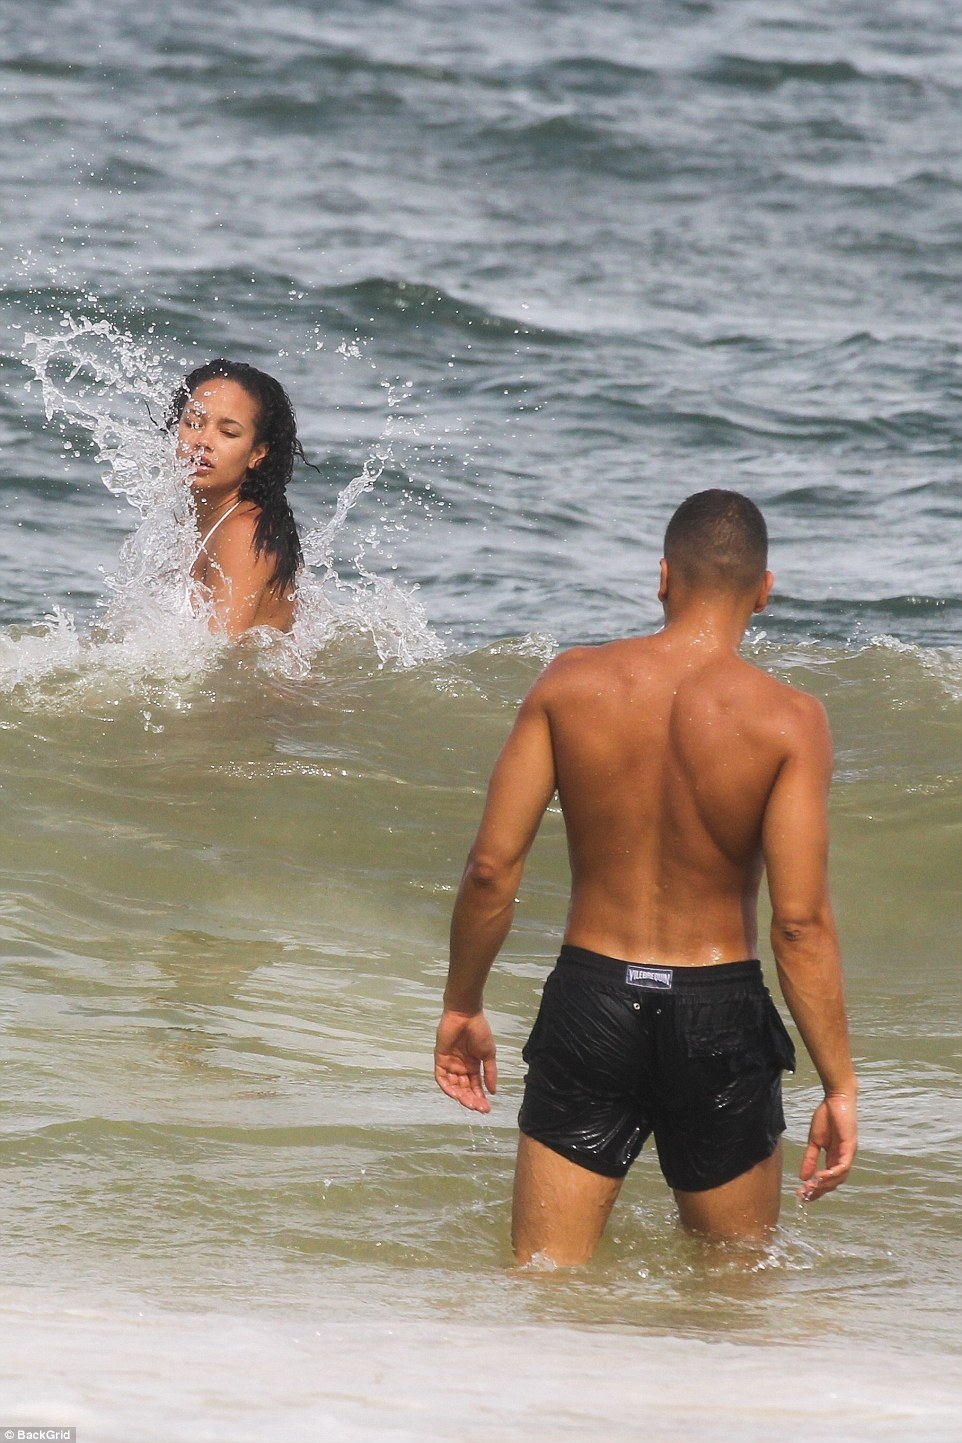 Younes Bendjima pack on the PDA with bikini-clad model who dated Tyga after Kylie Jenner